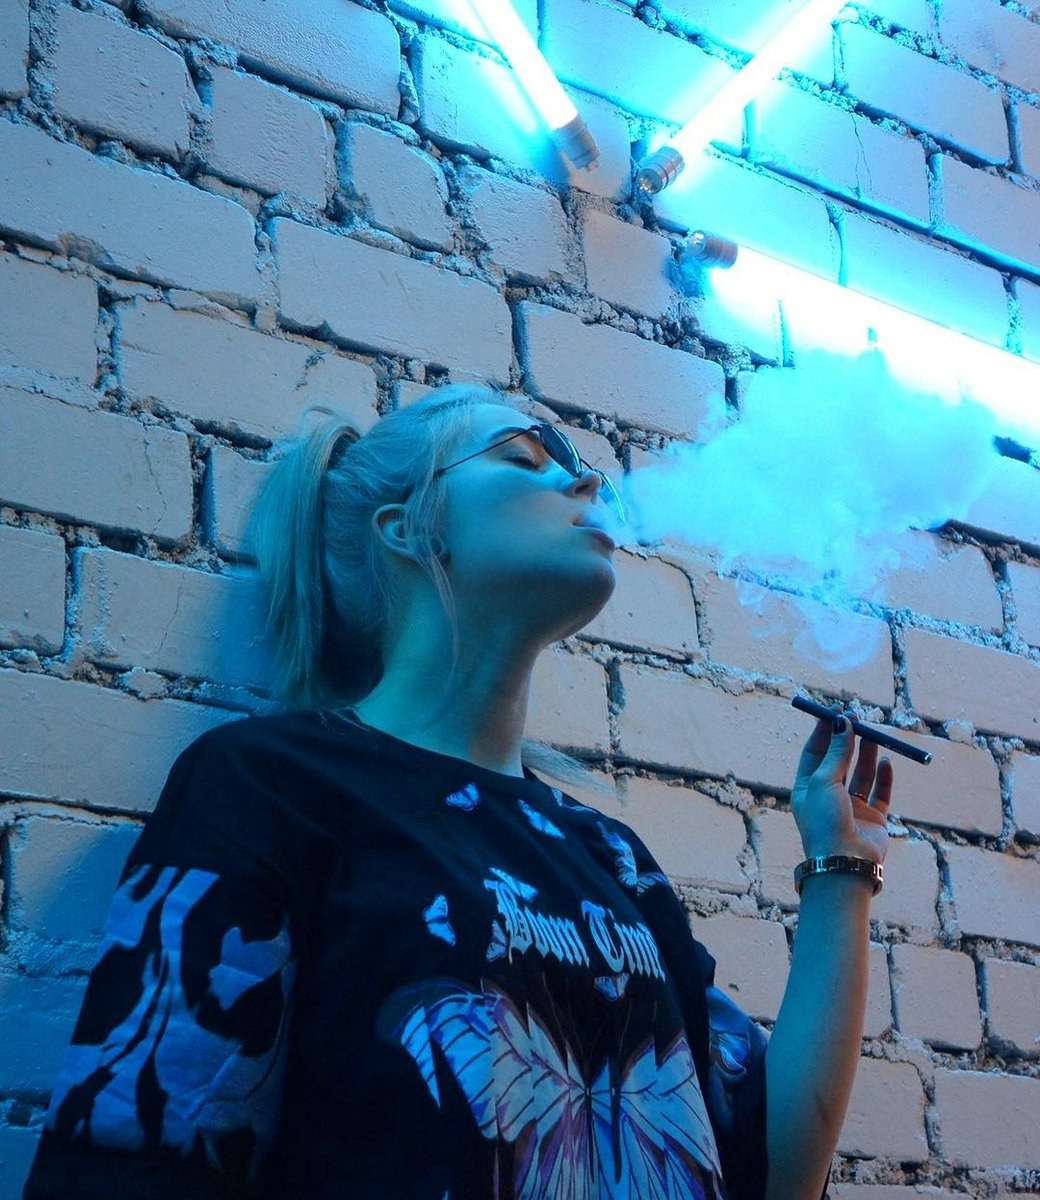 Science & Vapor Merge w/ VitaCig Fortified E-Diffusers!  https://t.co/m0F0tfVbAd   #voost #eliquid #ejuice #vitamins  #smoke #alternative #vape #model #billionaire #hookah #hot #fashion #tattoo #luxury #blogger #yoga #cannabis #cbd #millionaire #fitness #beautiful #ecig #mma https://t.co/qOfEMDh5Qn